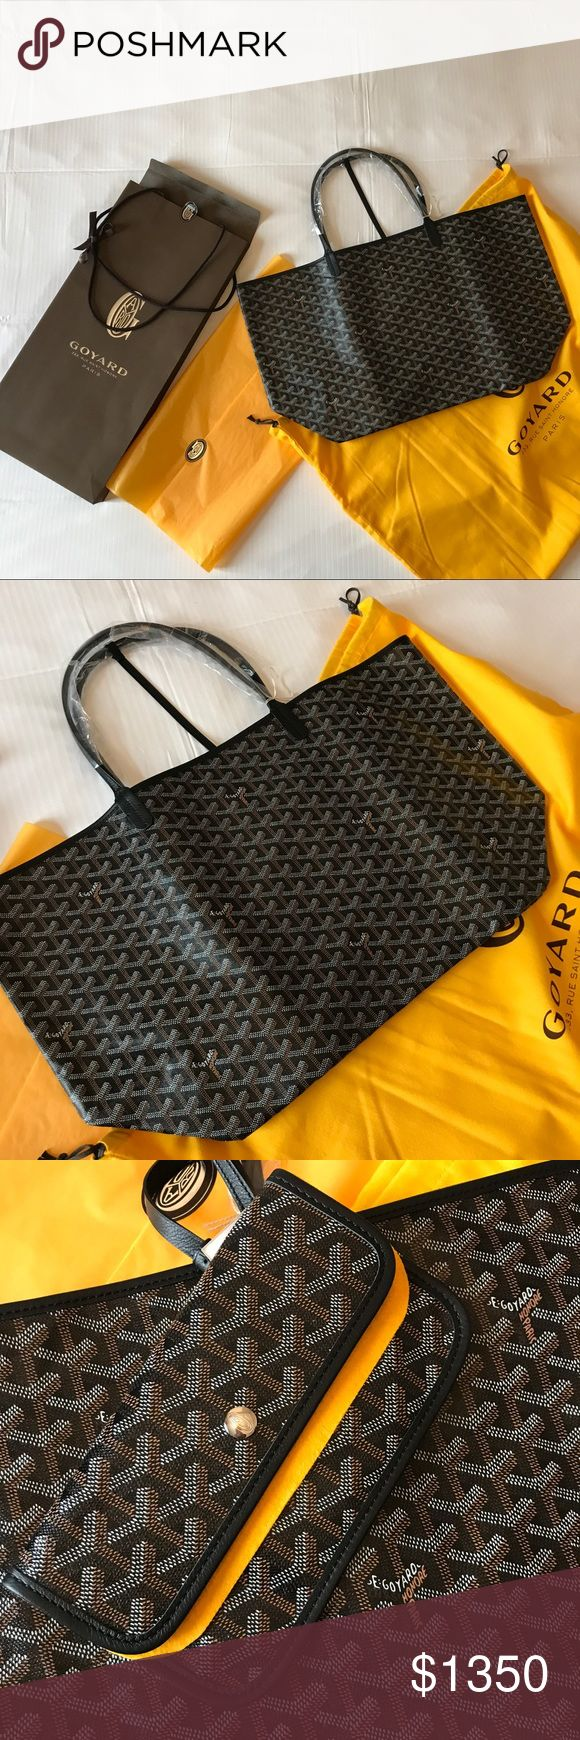 NIB Goyard Tote GM Black On Black Large Still in box, never use. Authentic bag large size. Very classic, fit everything. Will ship in a Goyard bag just like from the store. Price is firm, no trade please. I live in SF and can meet in person to reduce the price. PP will be limited to only users with some transactions in Poshmark before. Can also drop some a bit if you check M, I have the same username there. No email outside of this please. Goyard Bags Totes